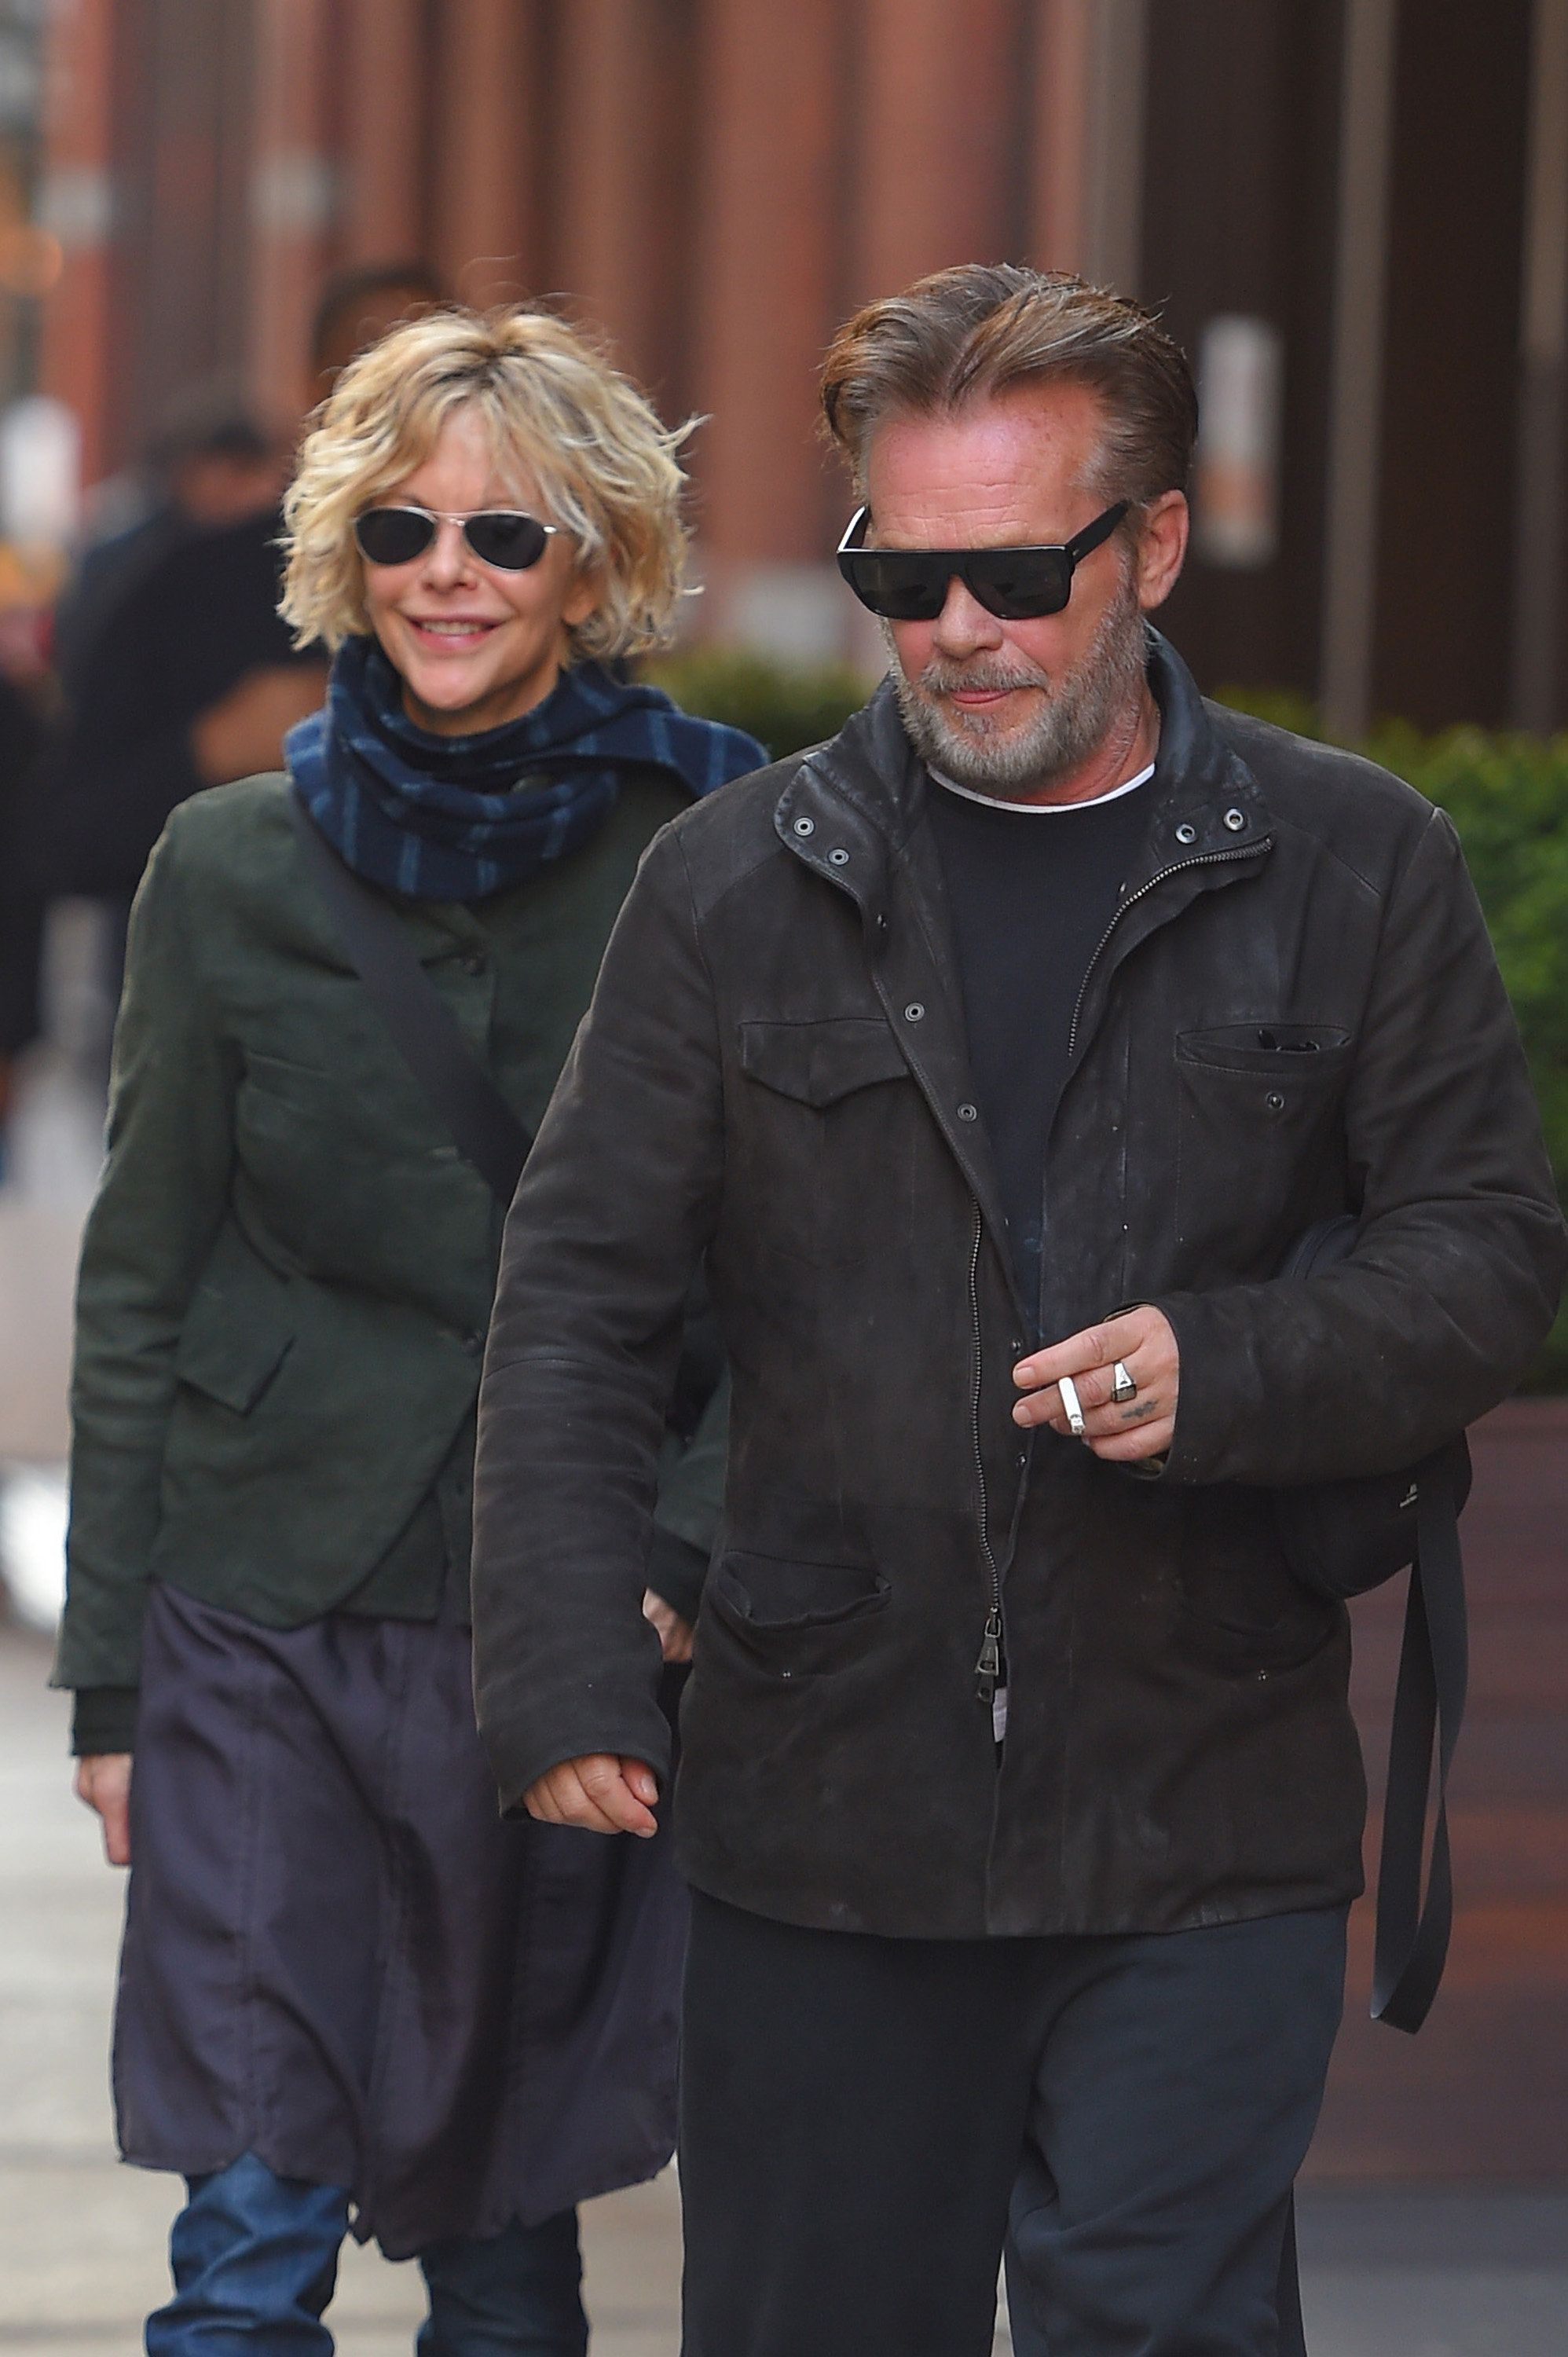 NEW YORK NY - NOVEMBER 03: Meg Ryan and  John Mellencamp sighting on November 3, 2014 in New York City.  (Photo by Josiah Kamau/BuzzFoto/FilmMagic)